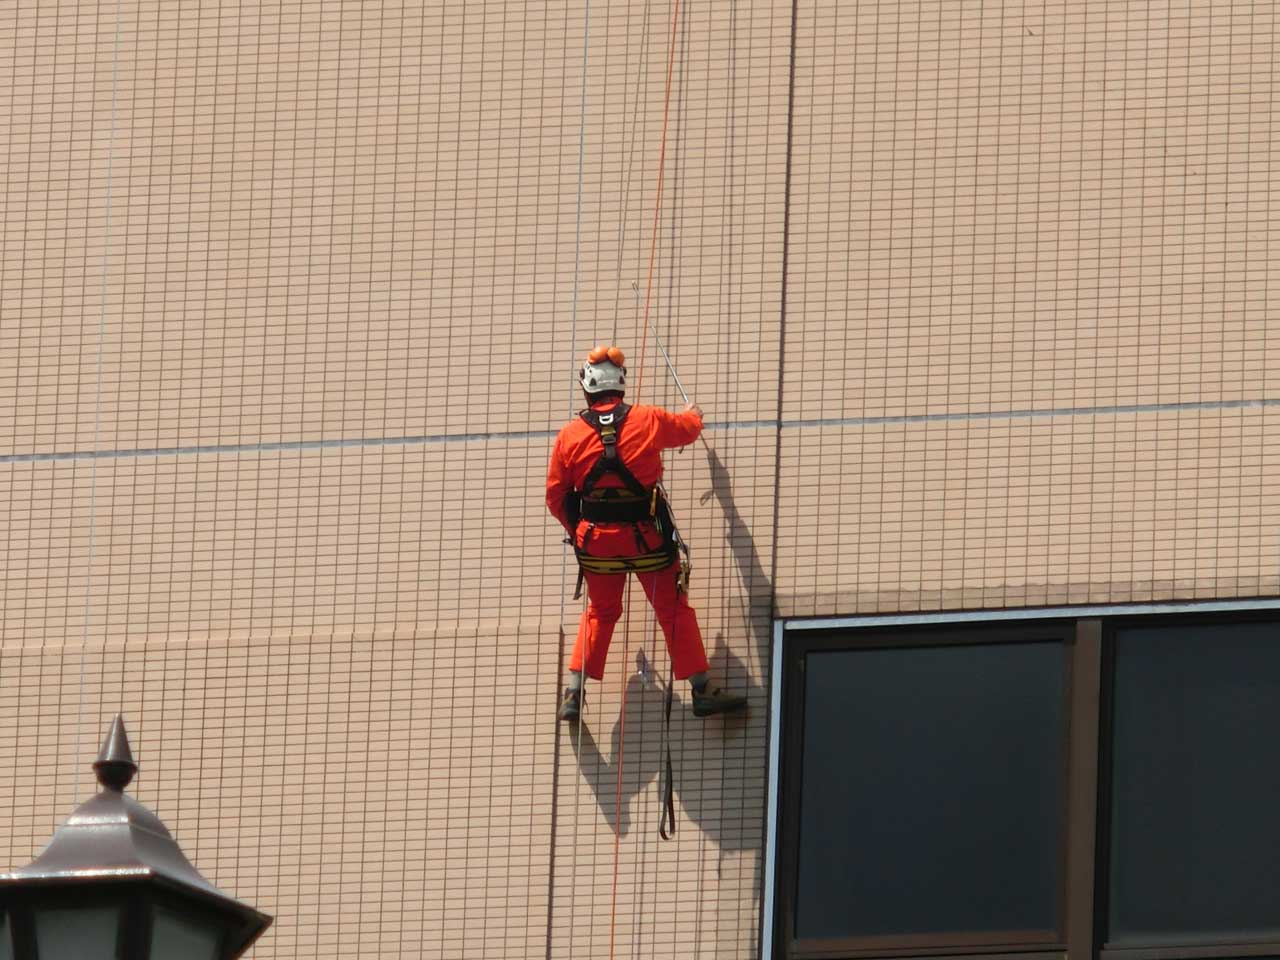 Tile percussion investigation by rope access